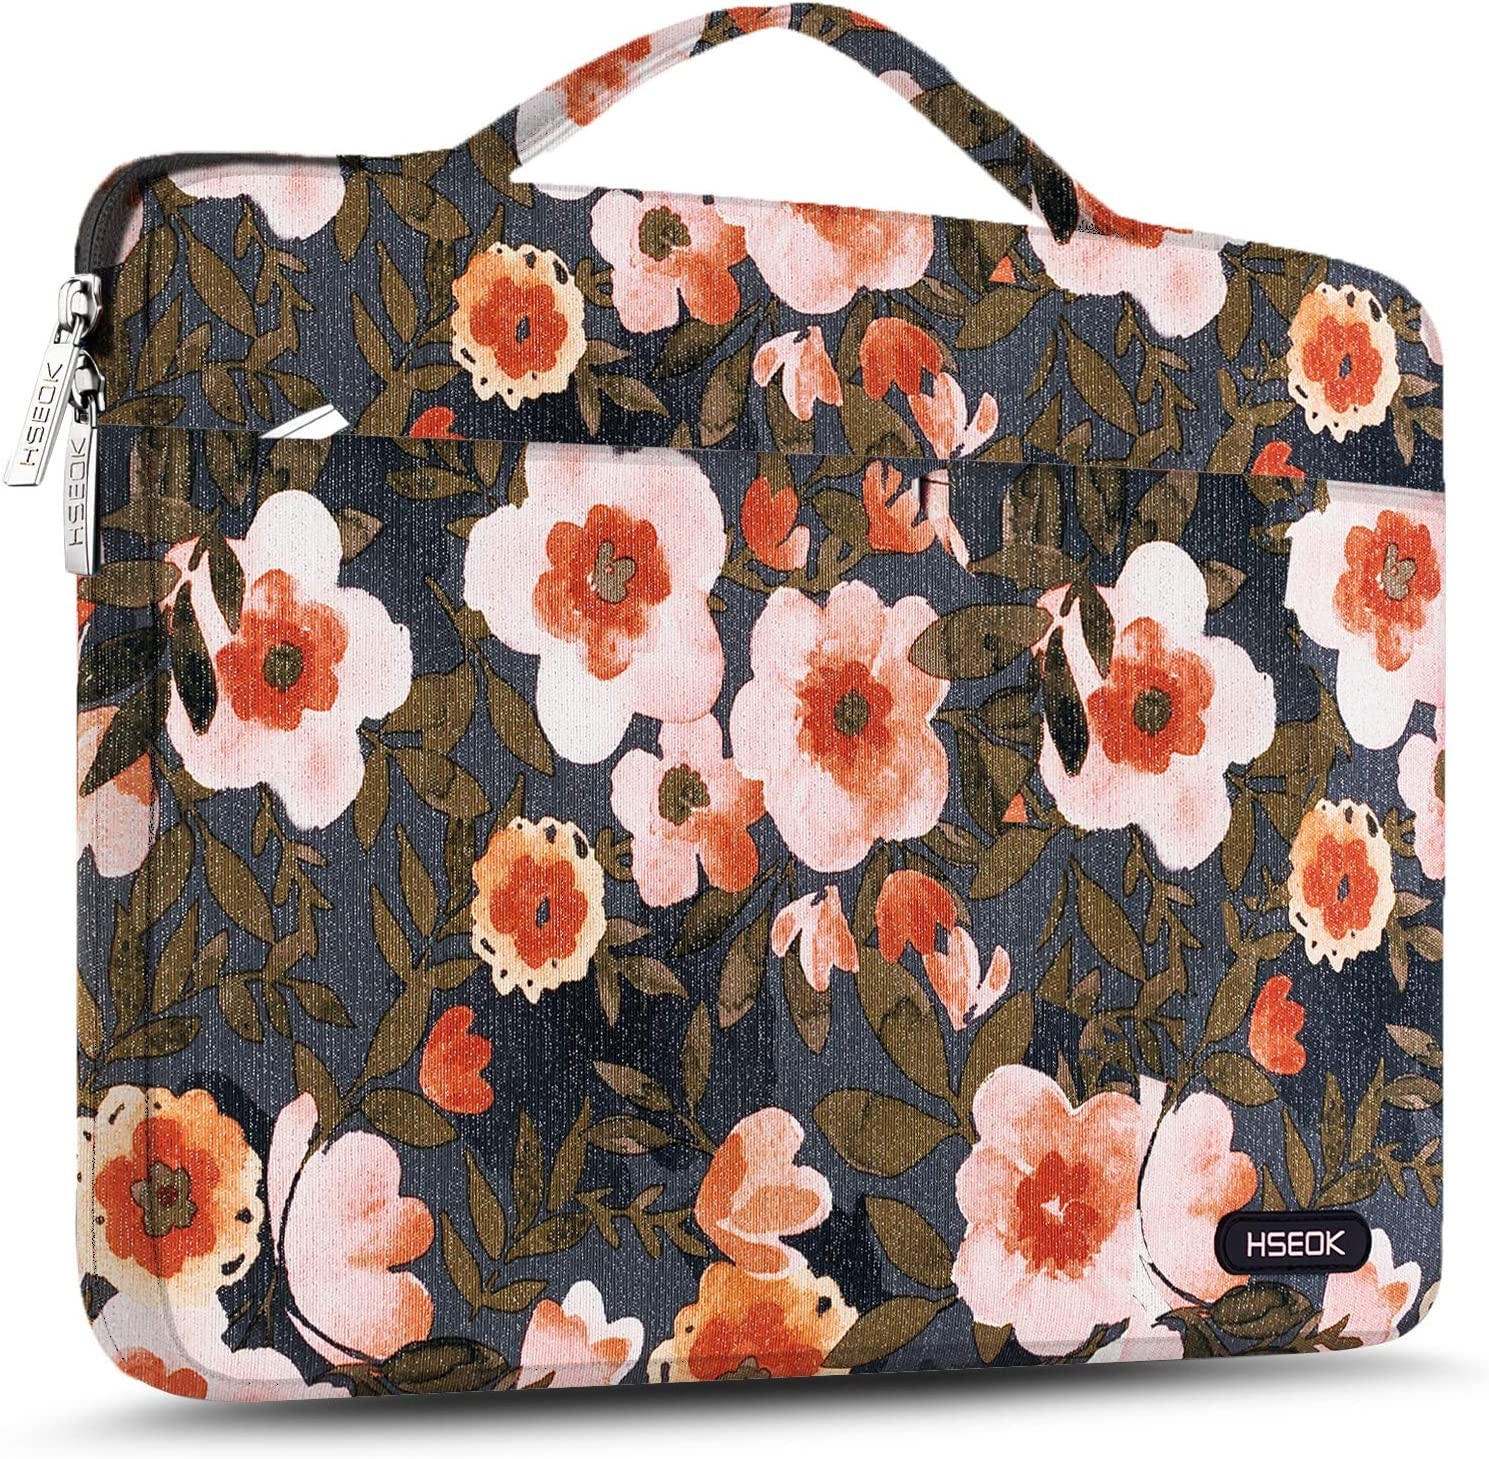 Hseok Laptop Sleeve 15 15.6 16 Inch Case Briefcase, Compatible MacBook Pro 16 15.4 inch, Surface Book 2/1 15 inch Spill-Resistant Handbag for Most Popular 15-16 inch Notebooks, Golden Flower